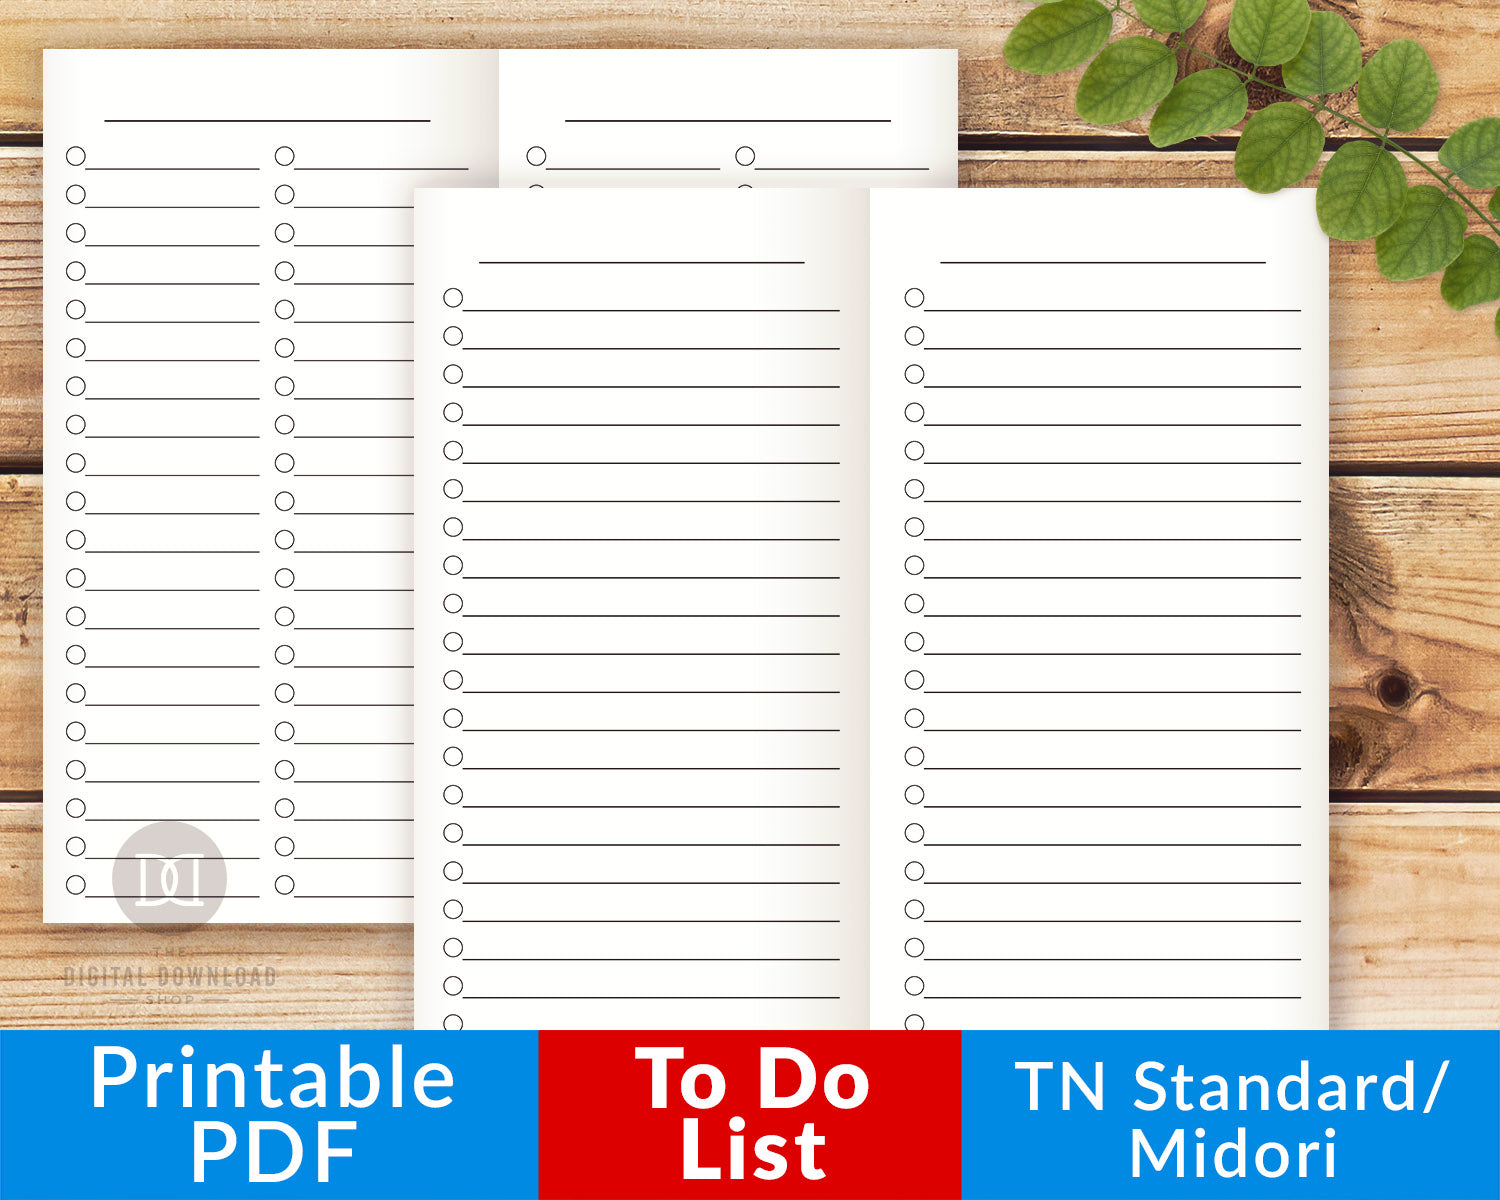 picture about To Do List Printables called TN Regular/Every month/Midori Towards-Do Lists Printables